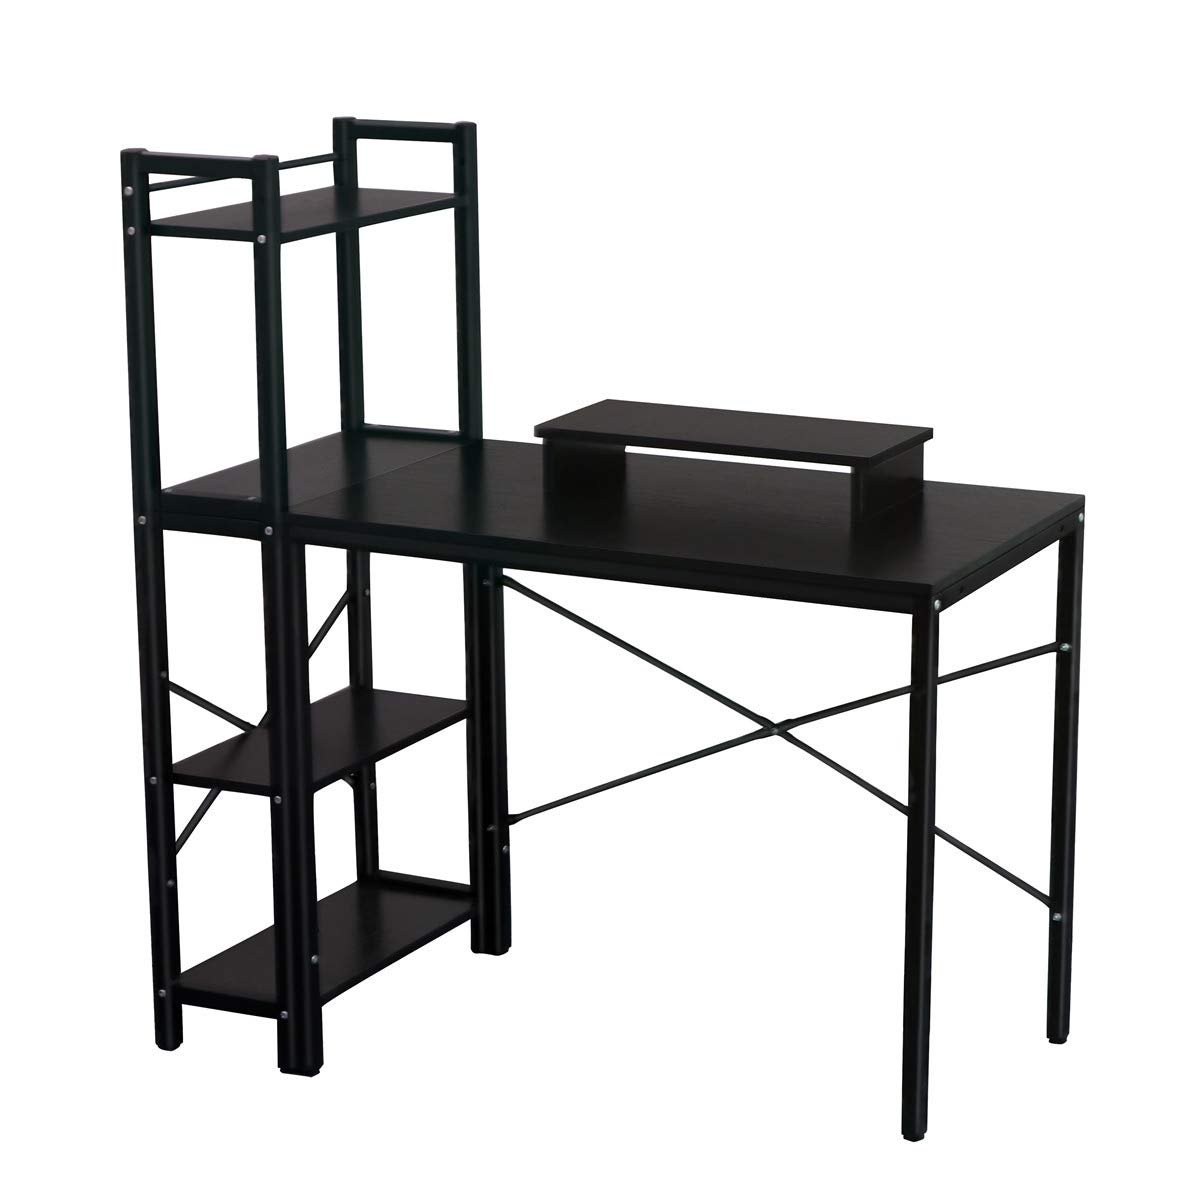 Computer Desk, LASUAVY Computer Desk with Shelves, Multipurpose Study Desk with Bookshelf, Writing Desk with 4 Tier Bookcase for Home Office (Black Computer Desk with Shelves)